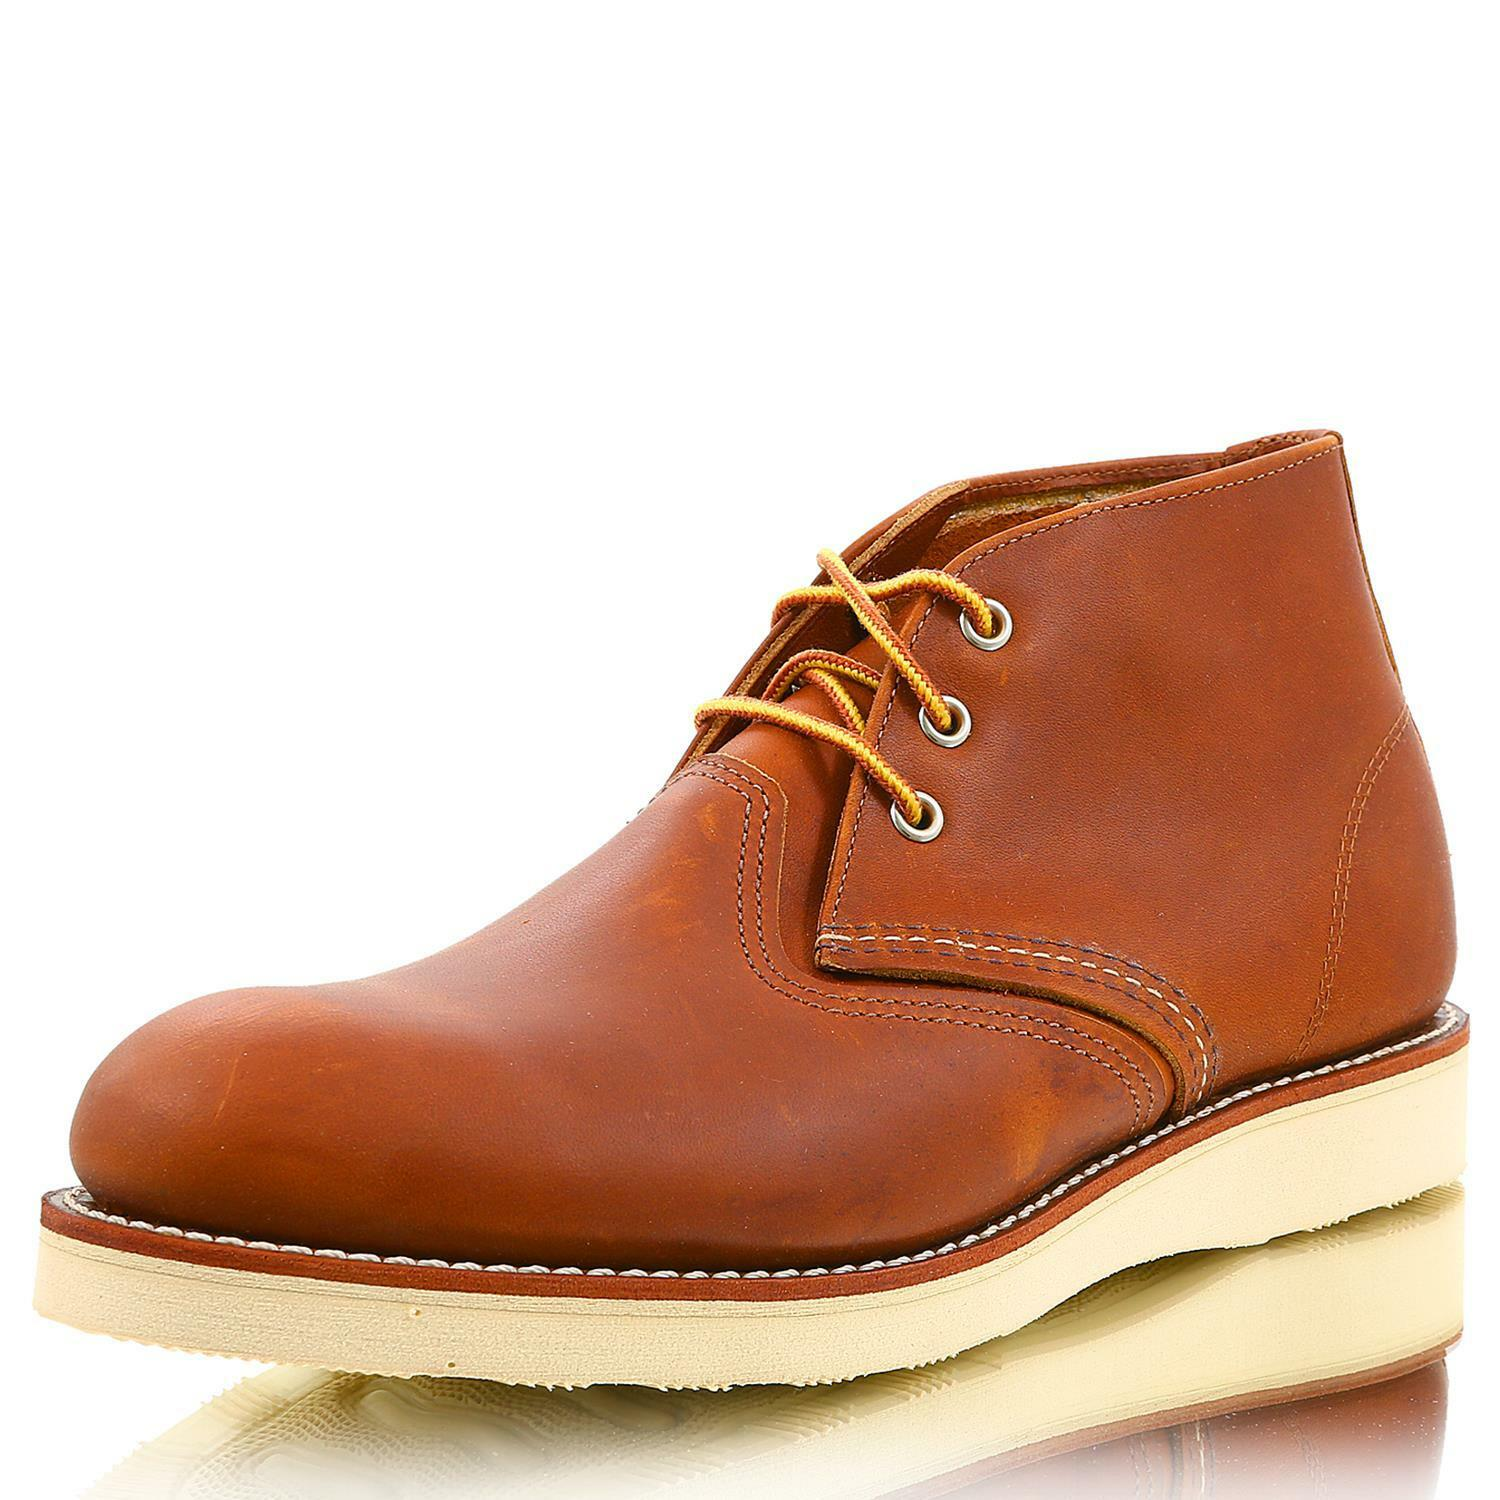 Red Wing Wing Wing 3140 WORK CHUKKA oro-ginal fc63a7